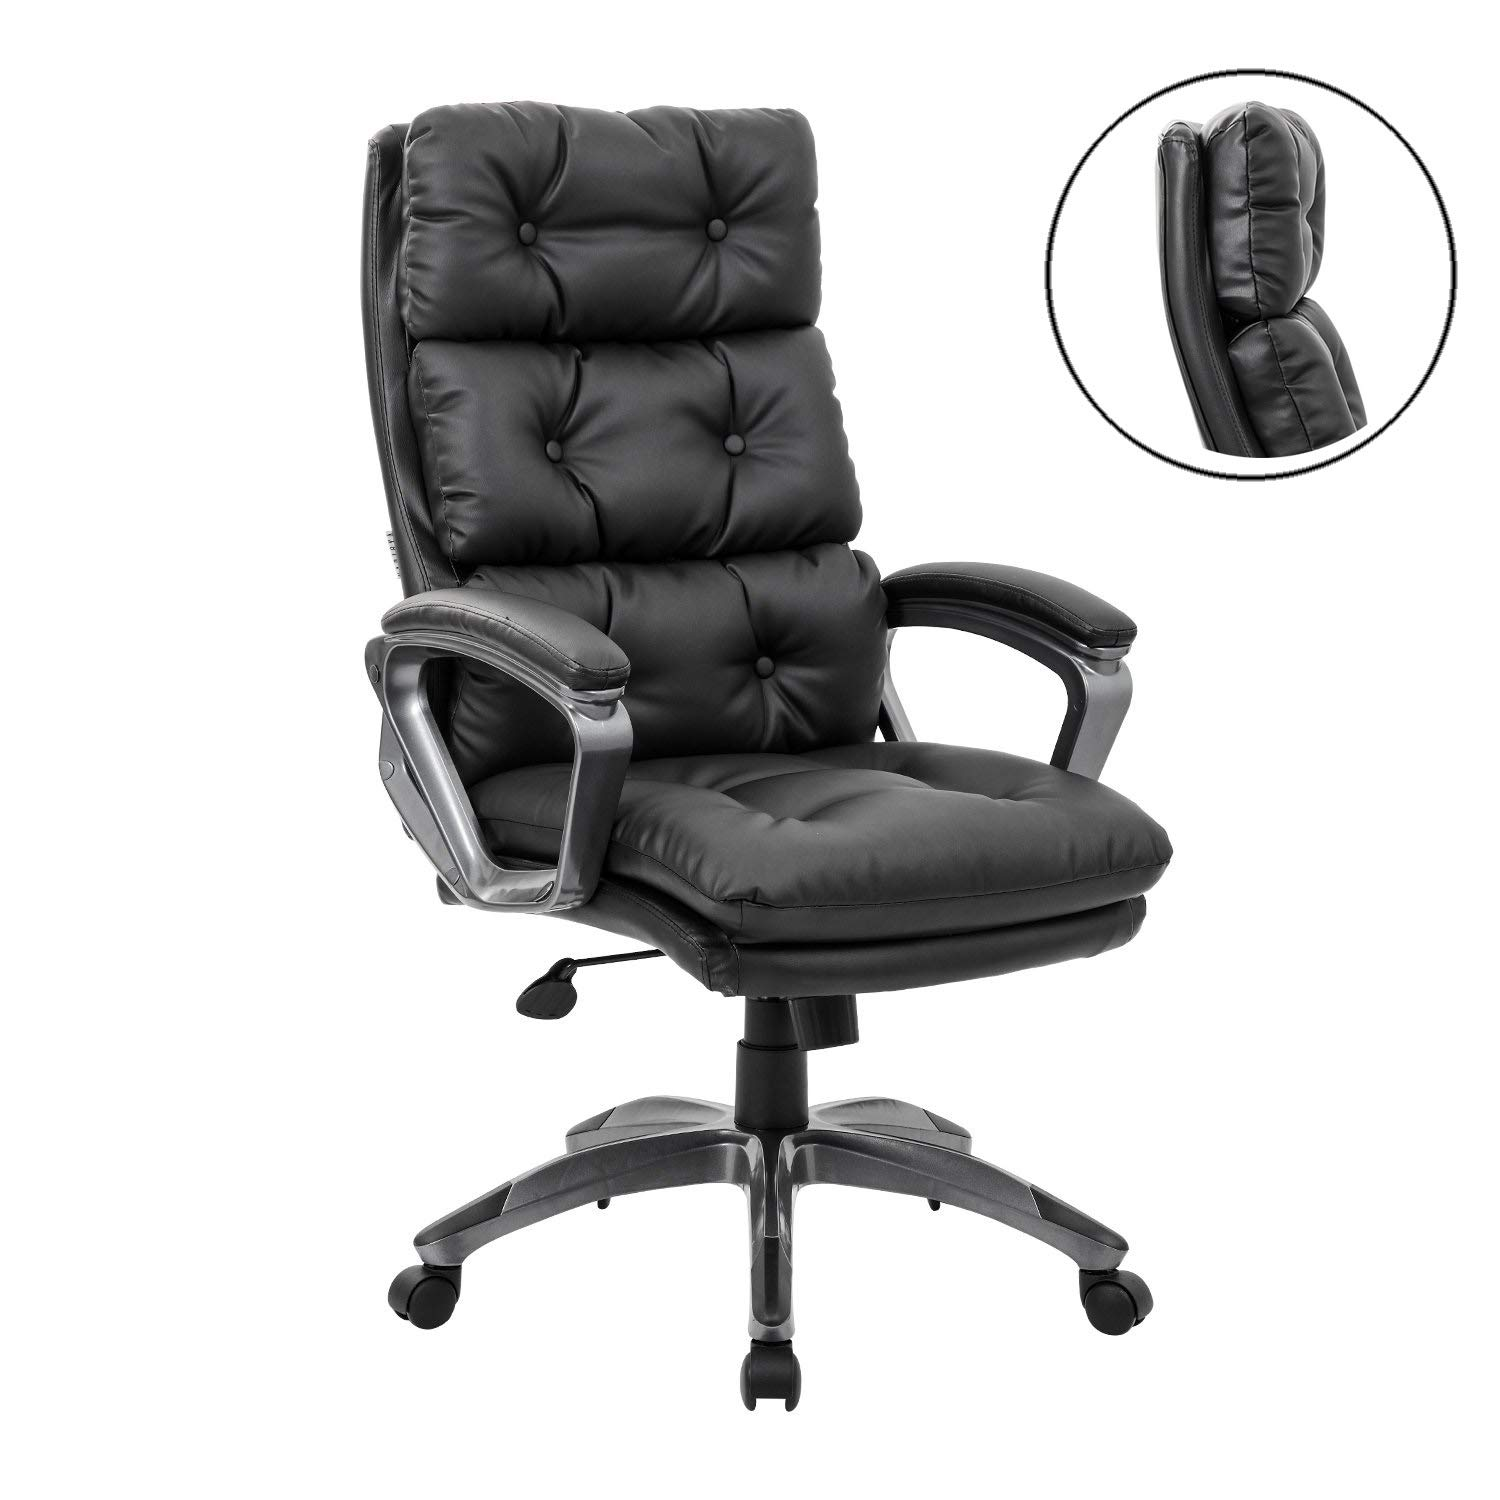 KADIRYA High Back Executive Office Chair - Bonded Leather Ergonomic Computer Chair Curved Armrests Task Desk